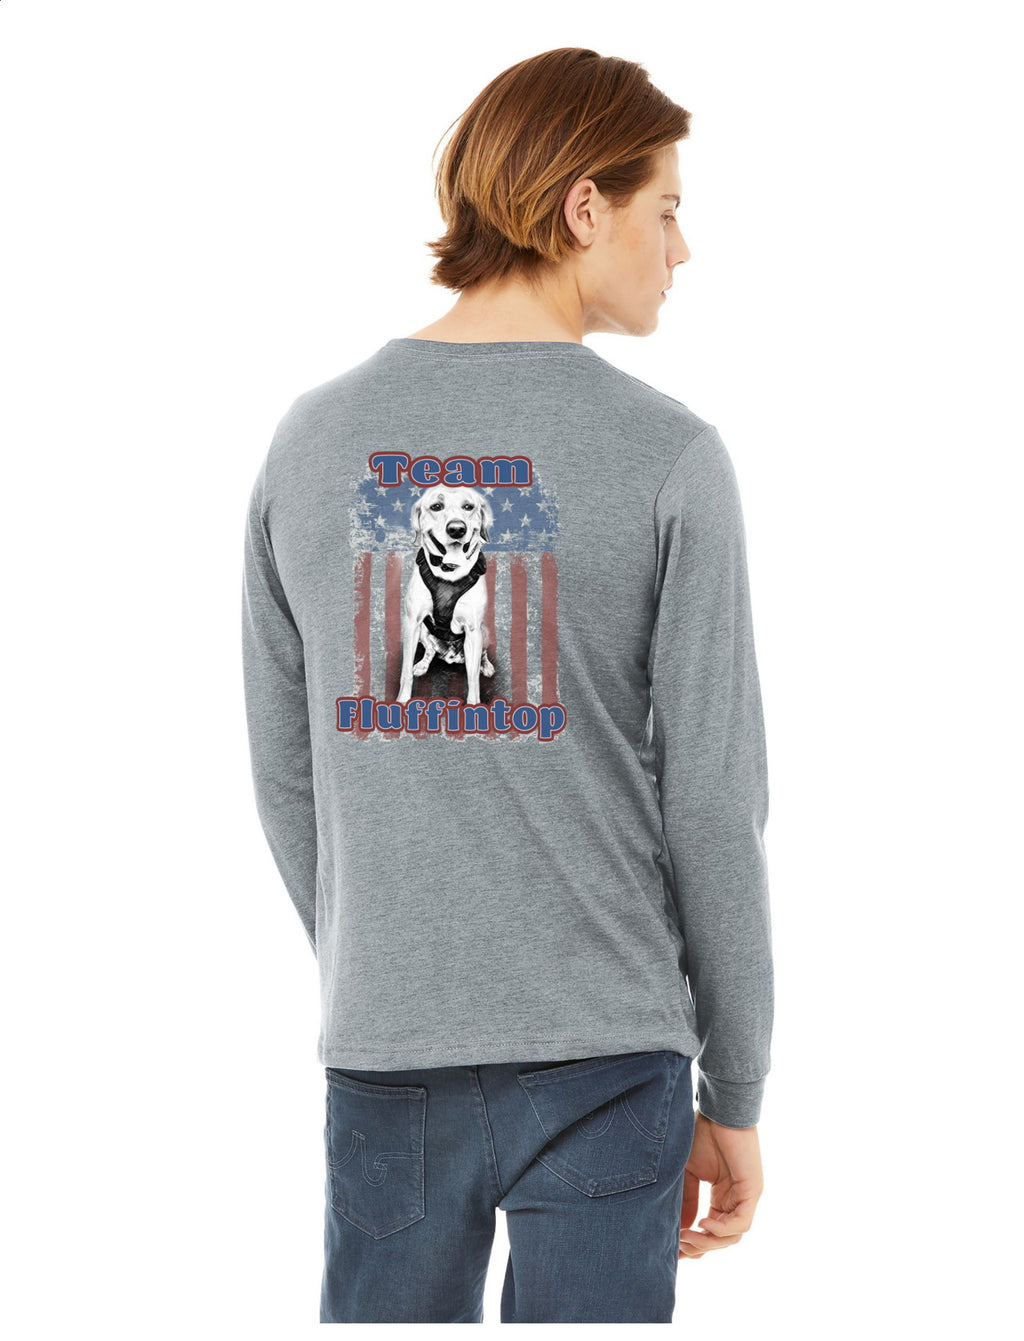 K9 Loki Supporter- BELLA+CANVAS ® Unisex Jersey Long Sleeve Tee